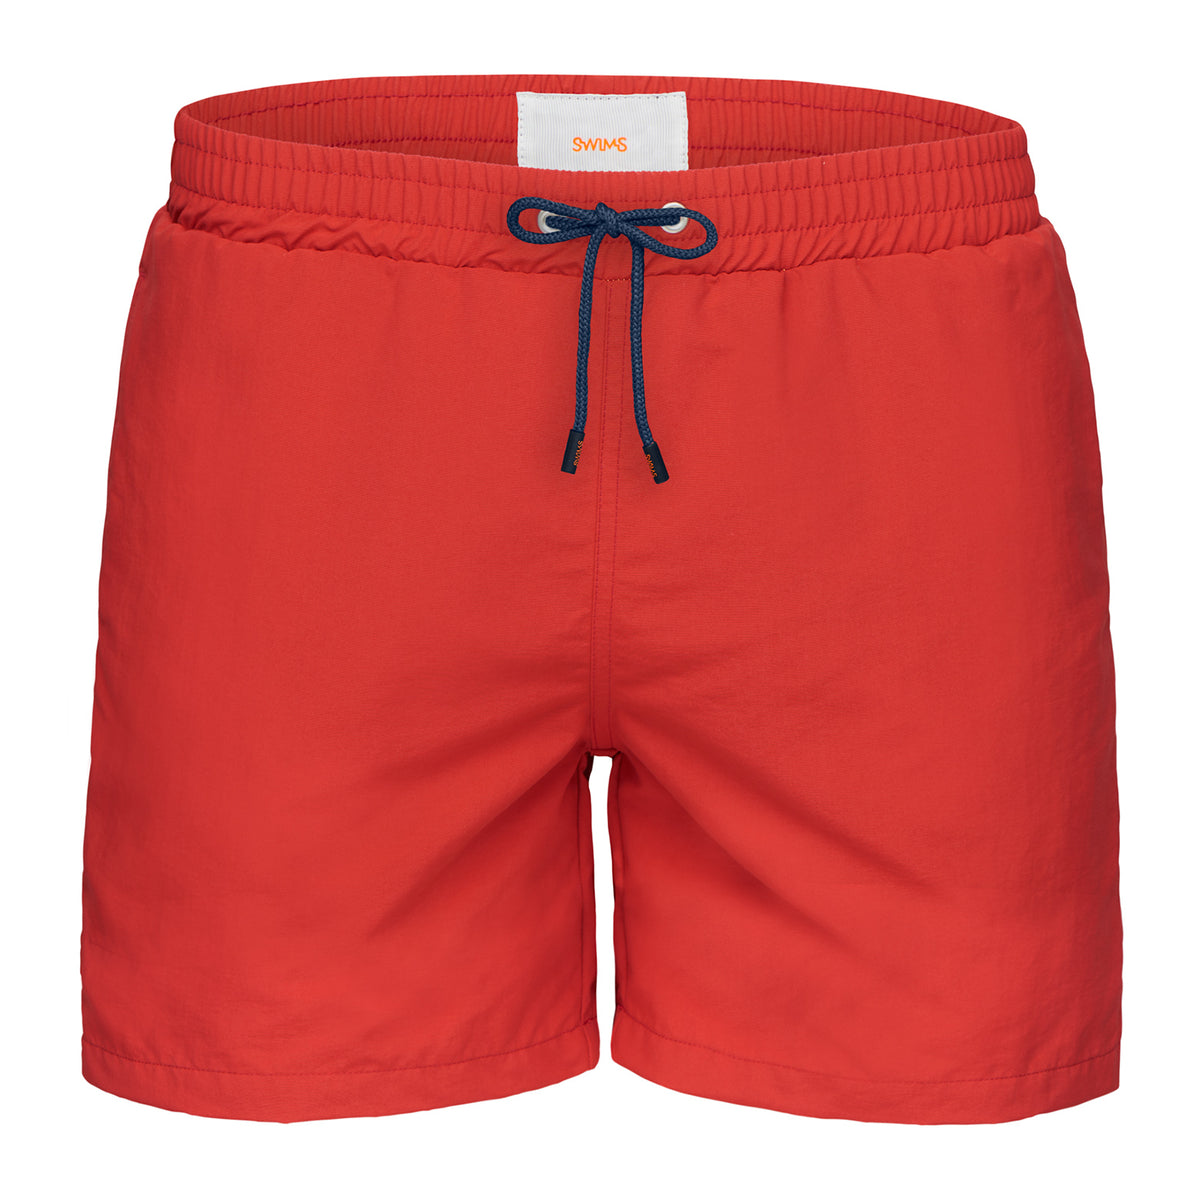 Breeze Swimshort Long - background::white,variant::Red Alert